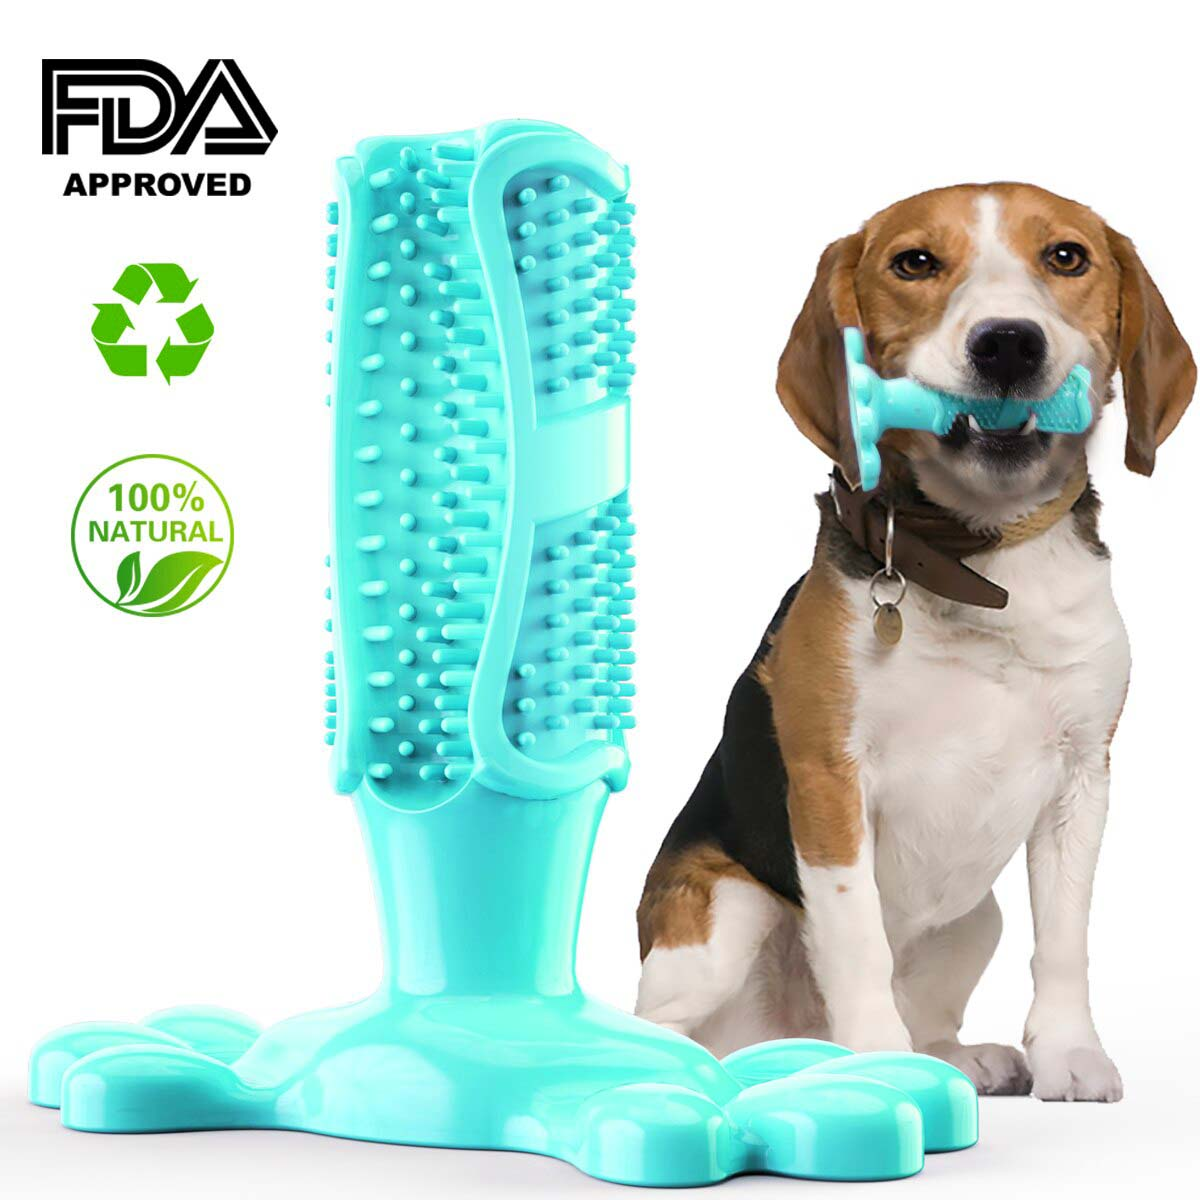 Canine Care Toothbrush (FDA Approved) 🔥 50% OFF LIMITED TIME! 🔥